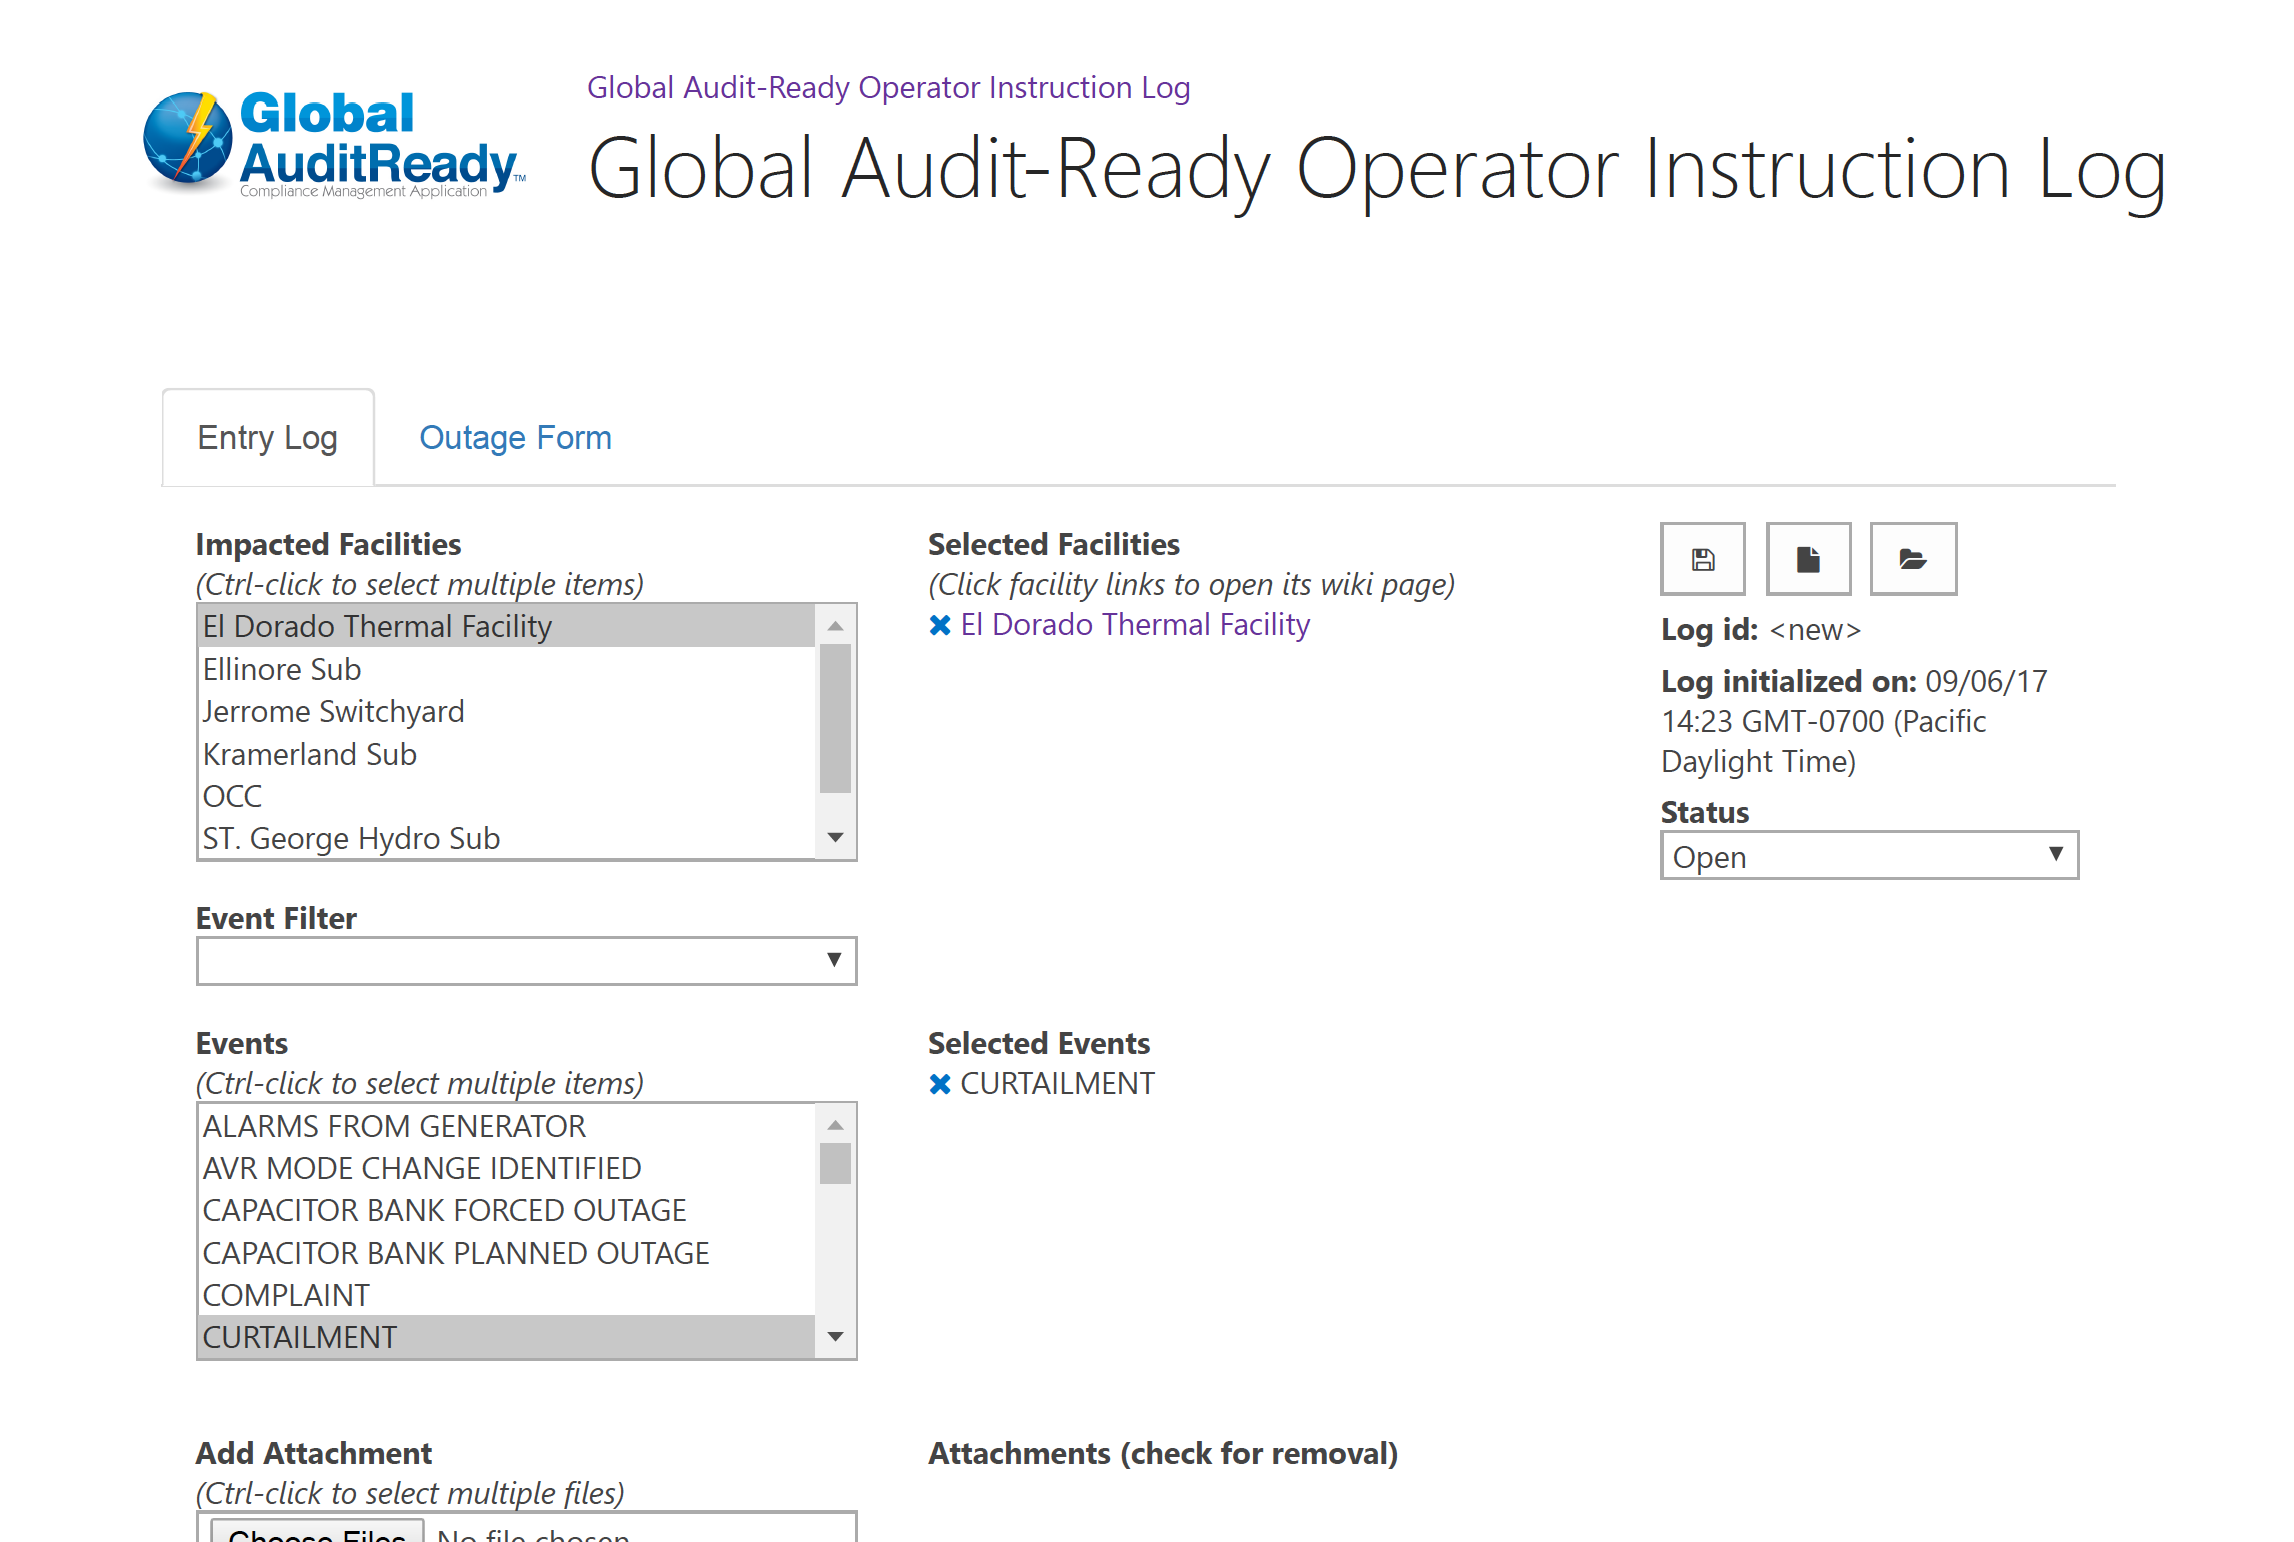 Global Audit-Ready Operator Instruction Log-screenshot.png